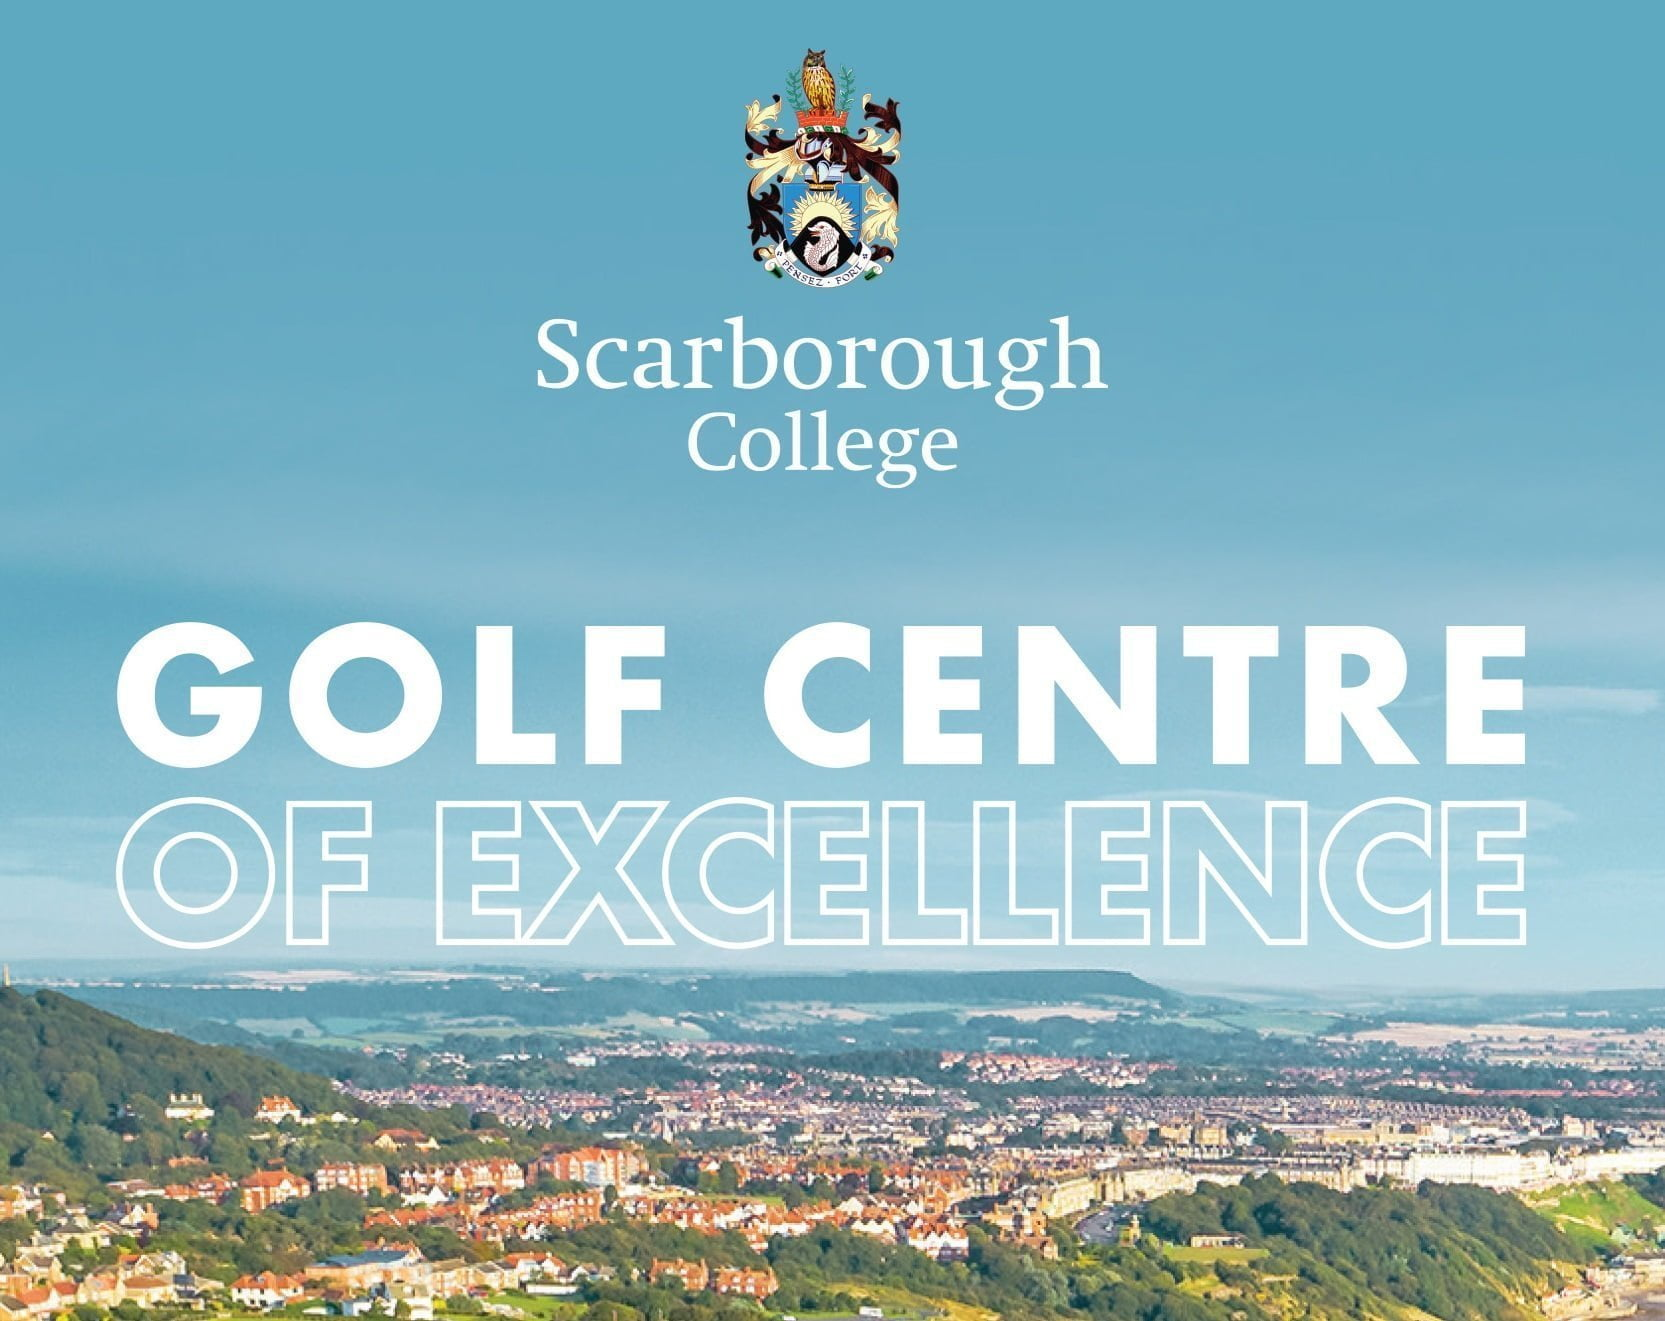 Scarborough College - Golf Centre of Excellence Insert-1